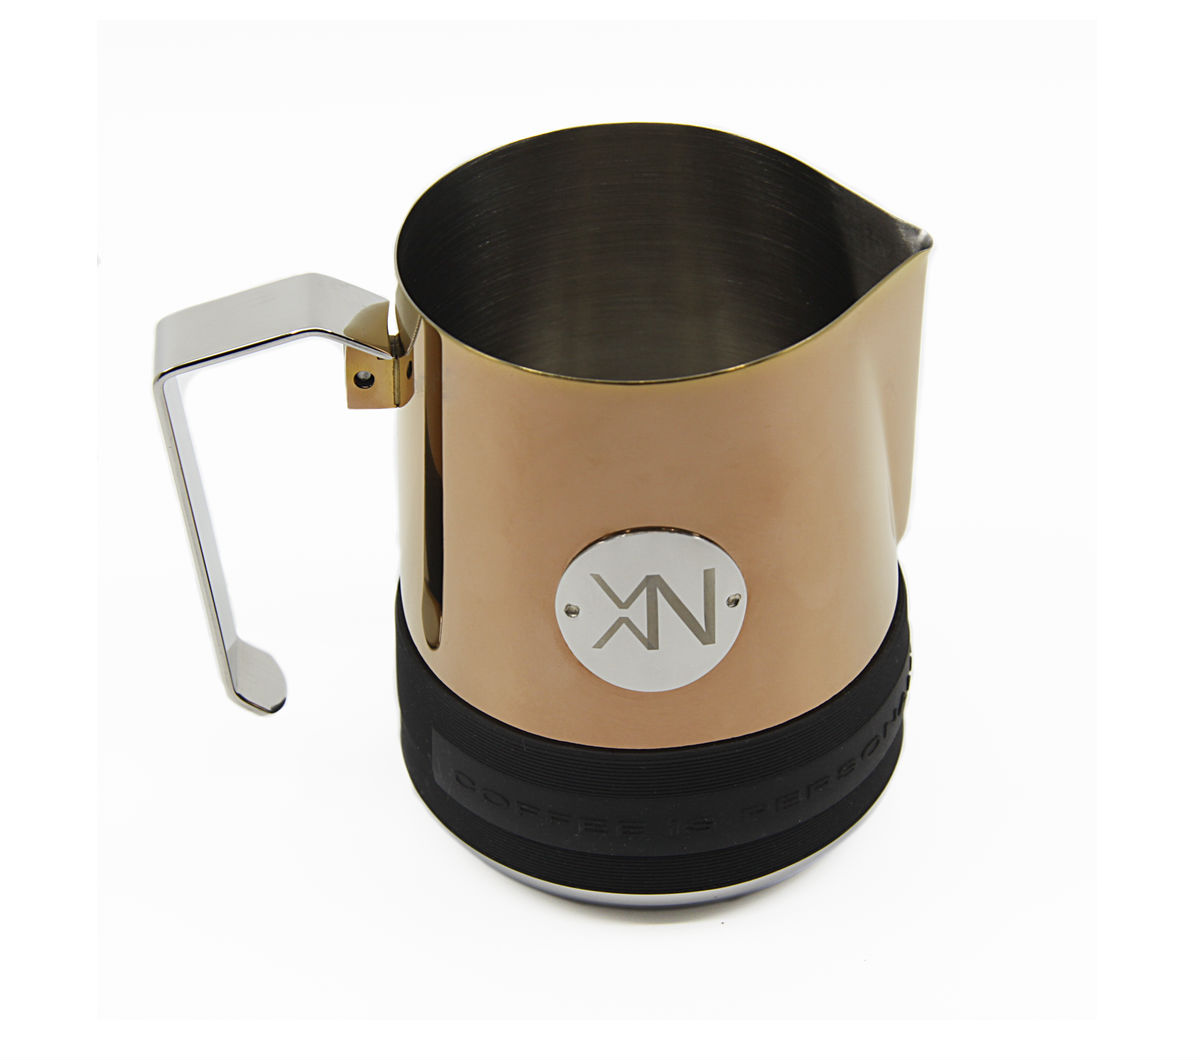 Modular Milk Pitcher - bronze